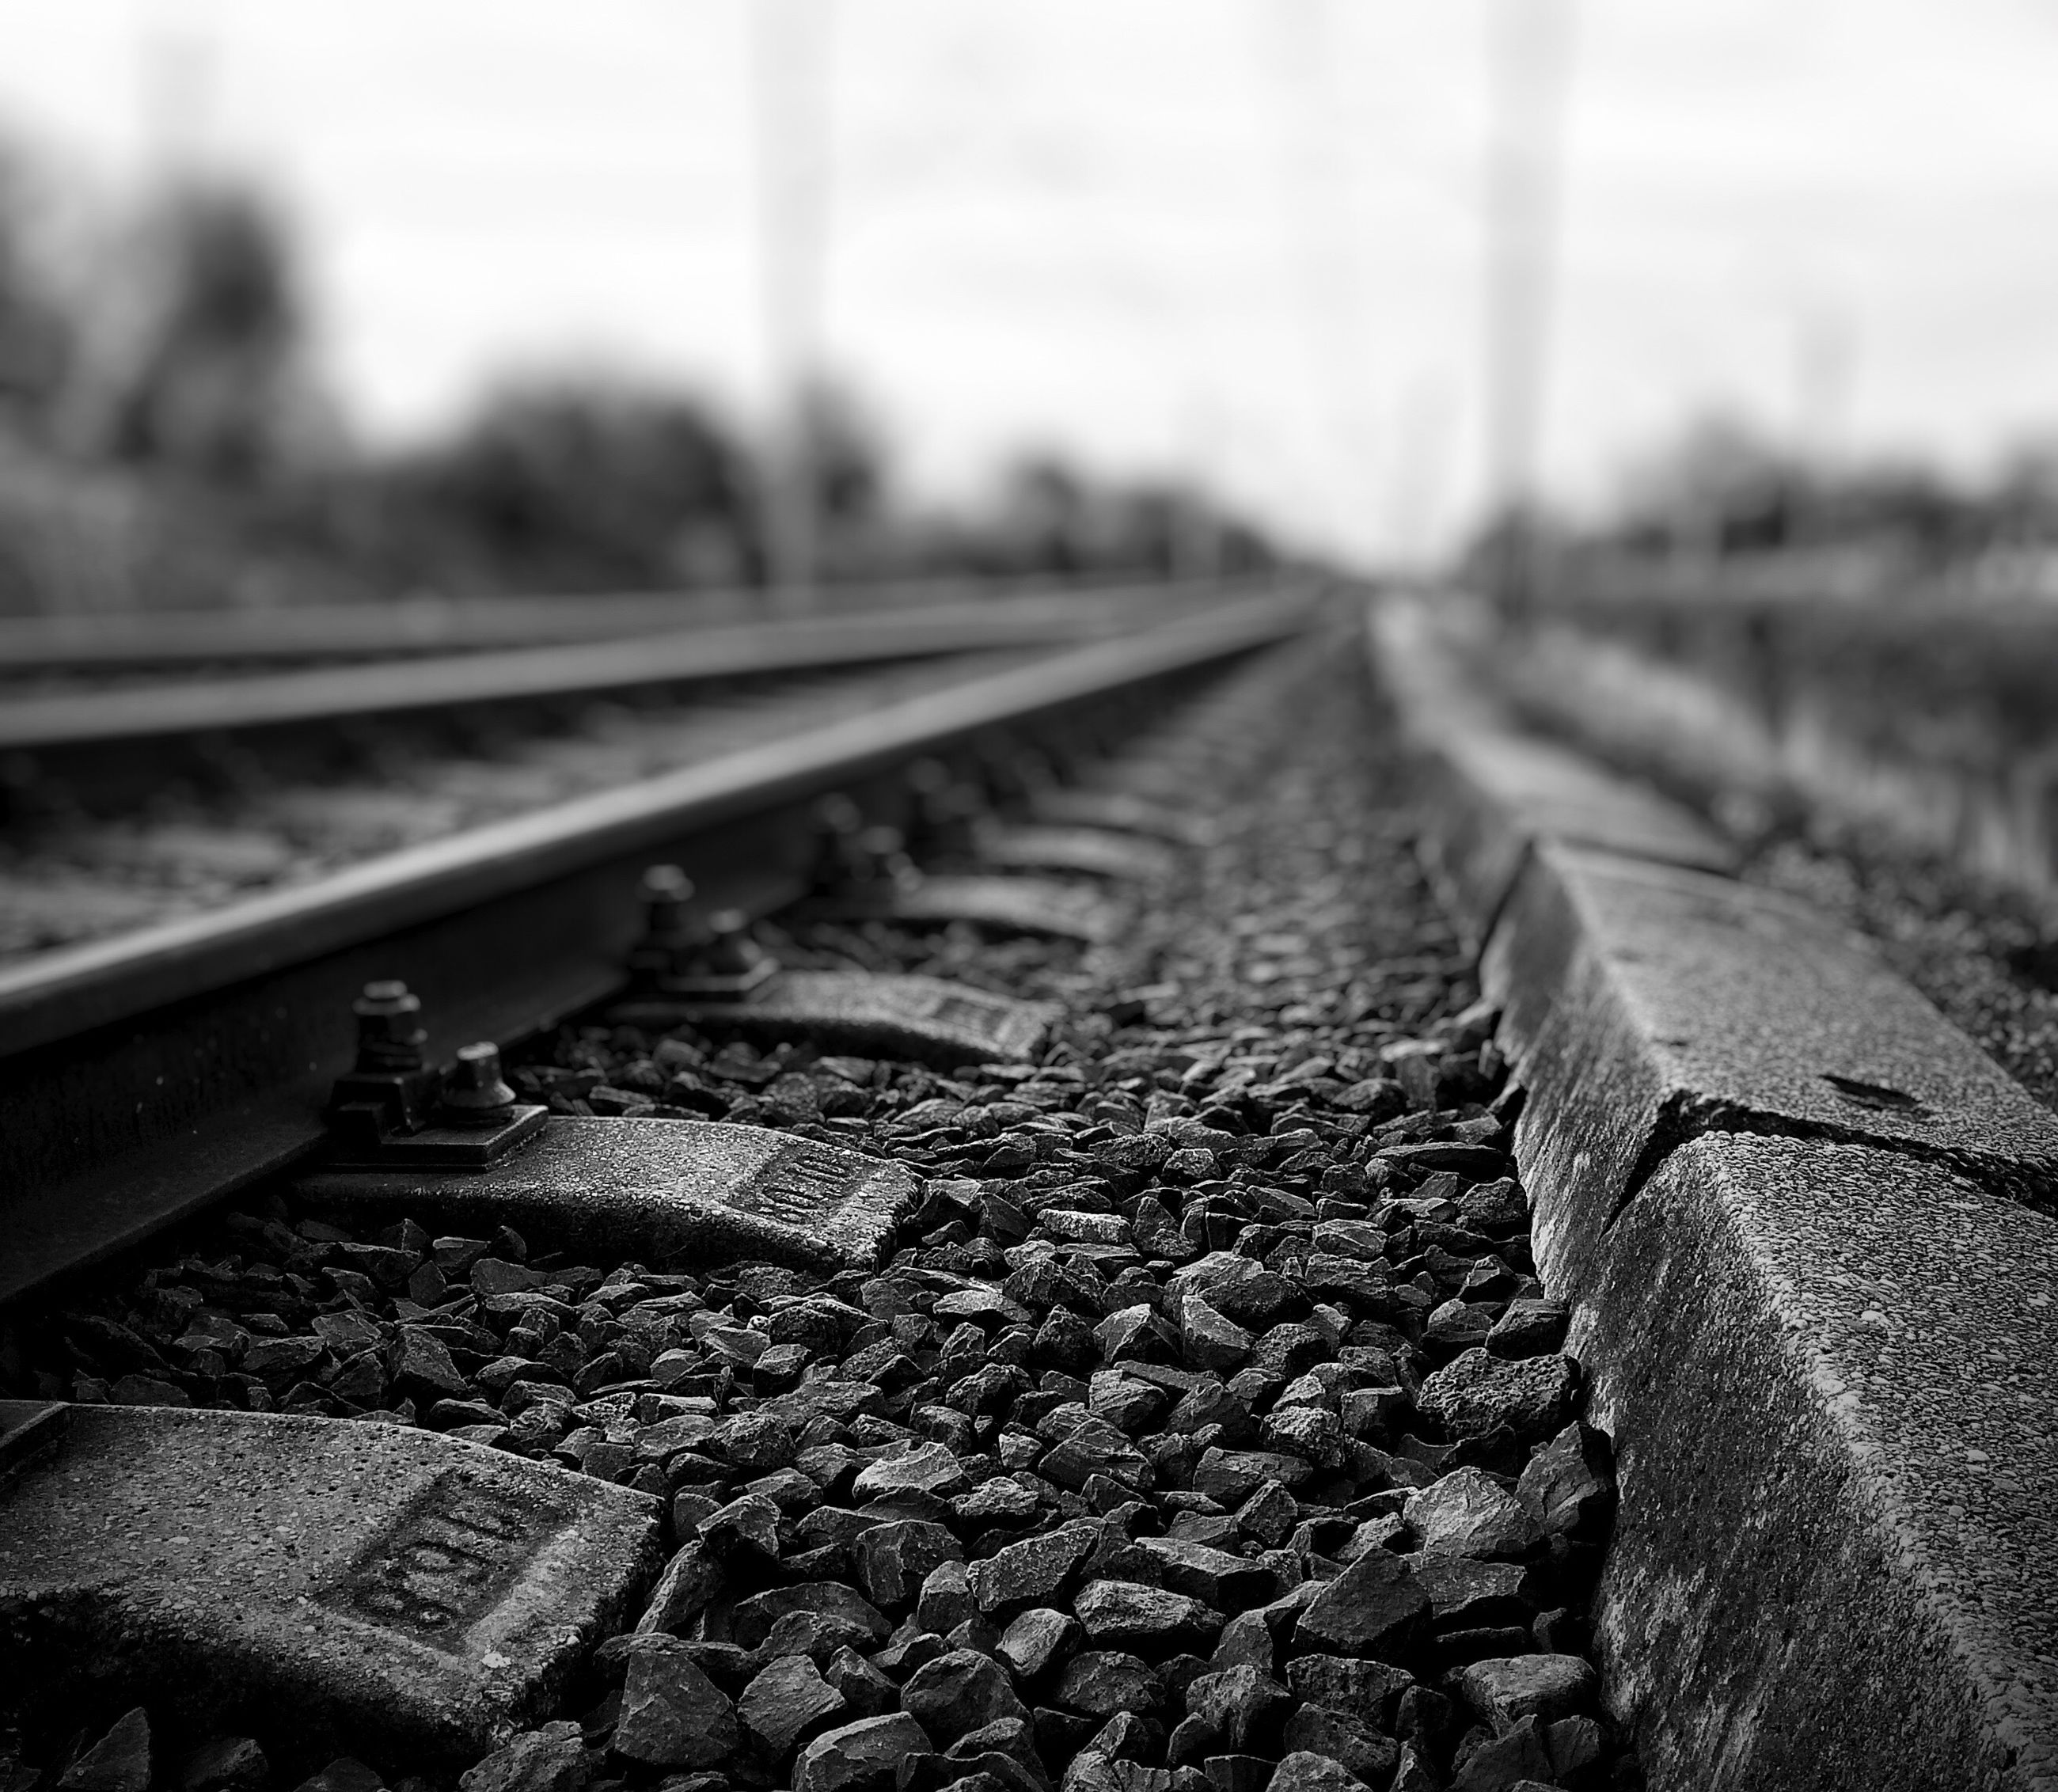 transportation, railroad track, diminishing perspective, the way forward, surface level, vanishing point, focus on foreground, selective focus, rail transportation, sky, metal, day, close-up, sunlight, one person, landscape, outdoors, road, railing, part of